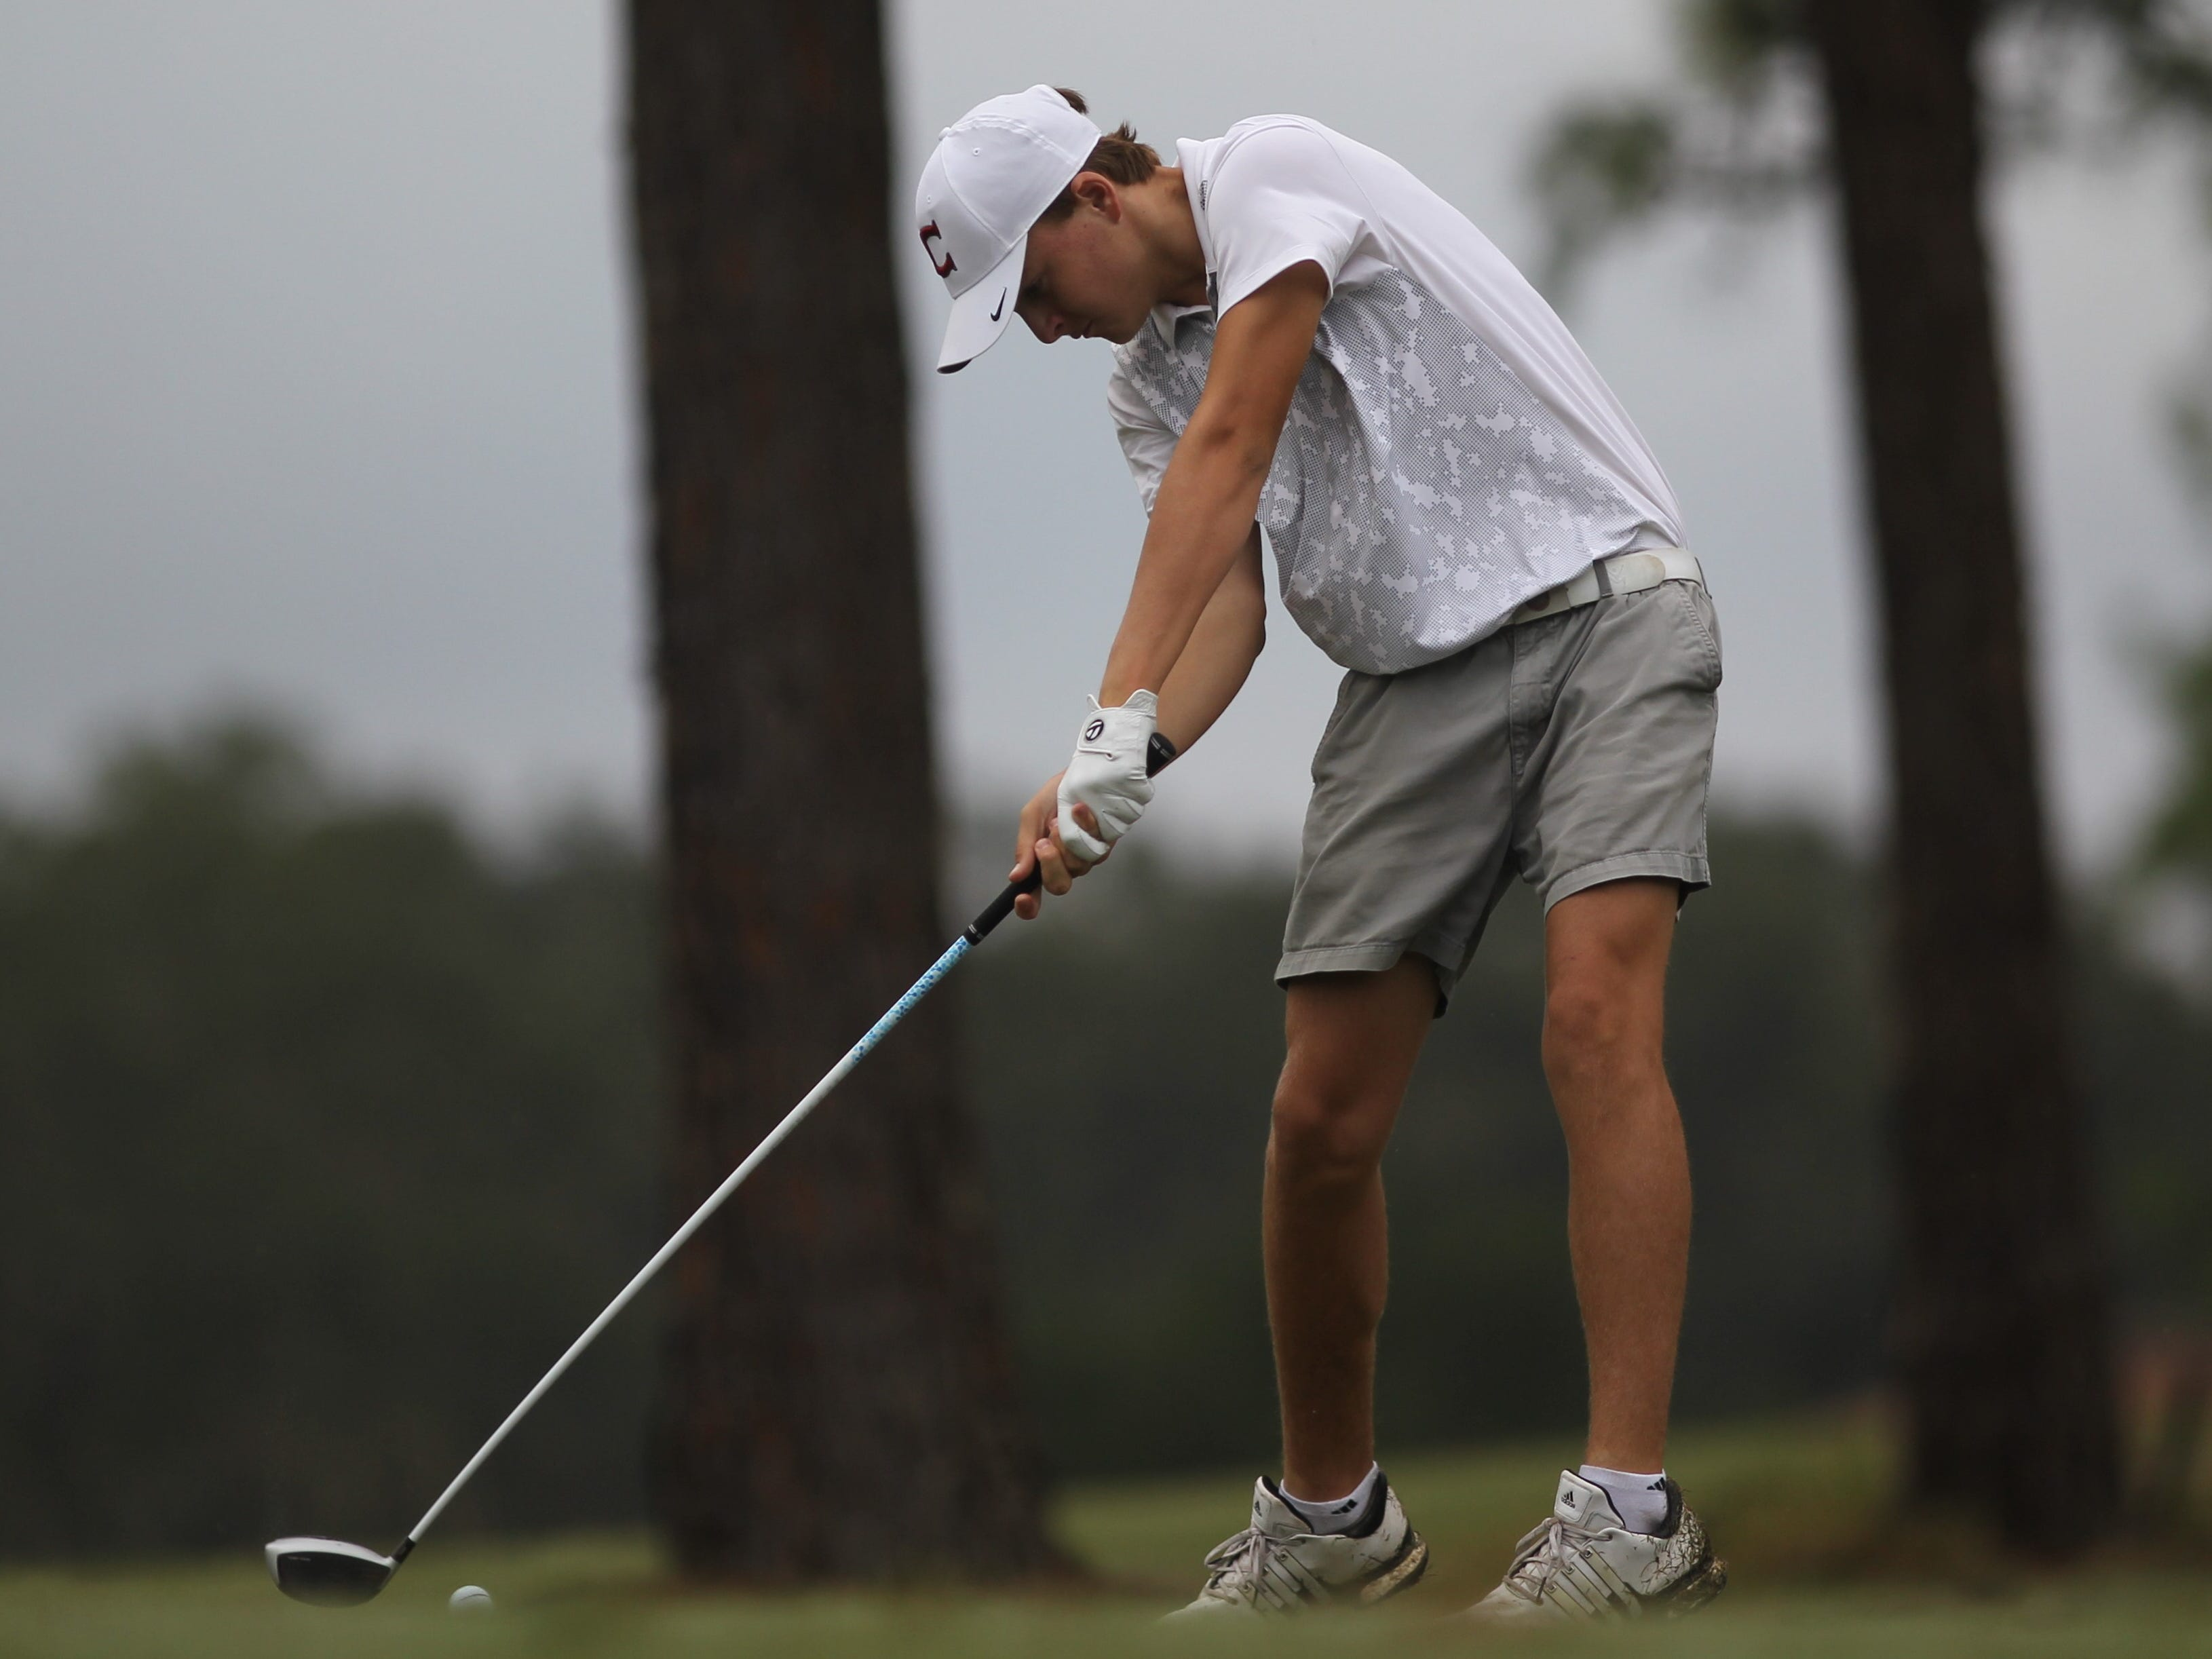 Chiles freshman Parker Bell tees off during the District 1-3A boys golf tournament at Hilaman Golf Course. Bell won with a 2-under par 70.